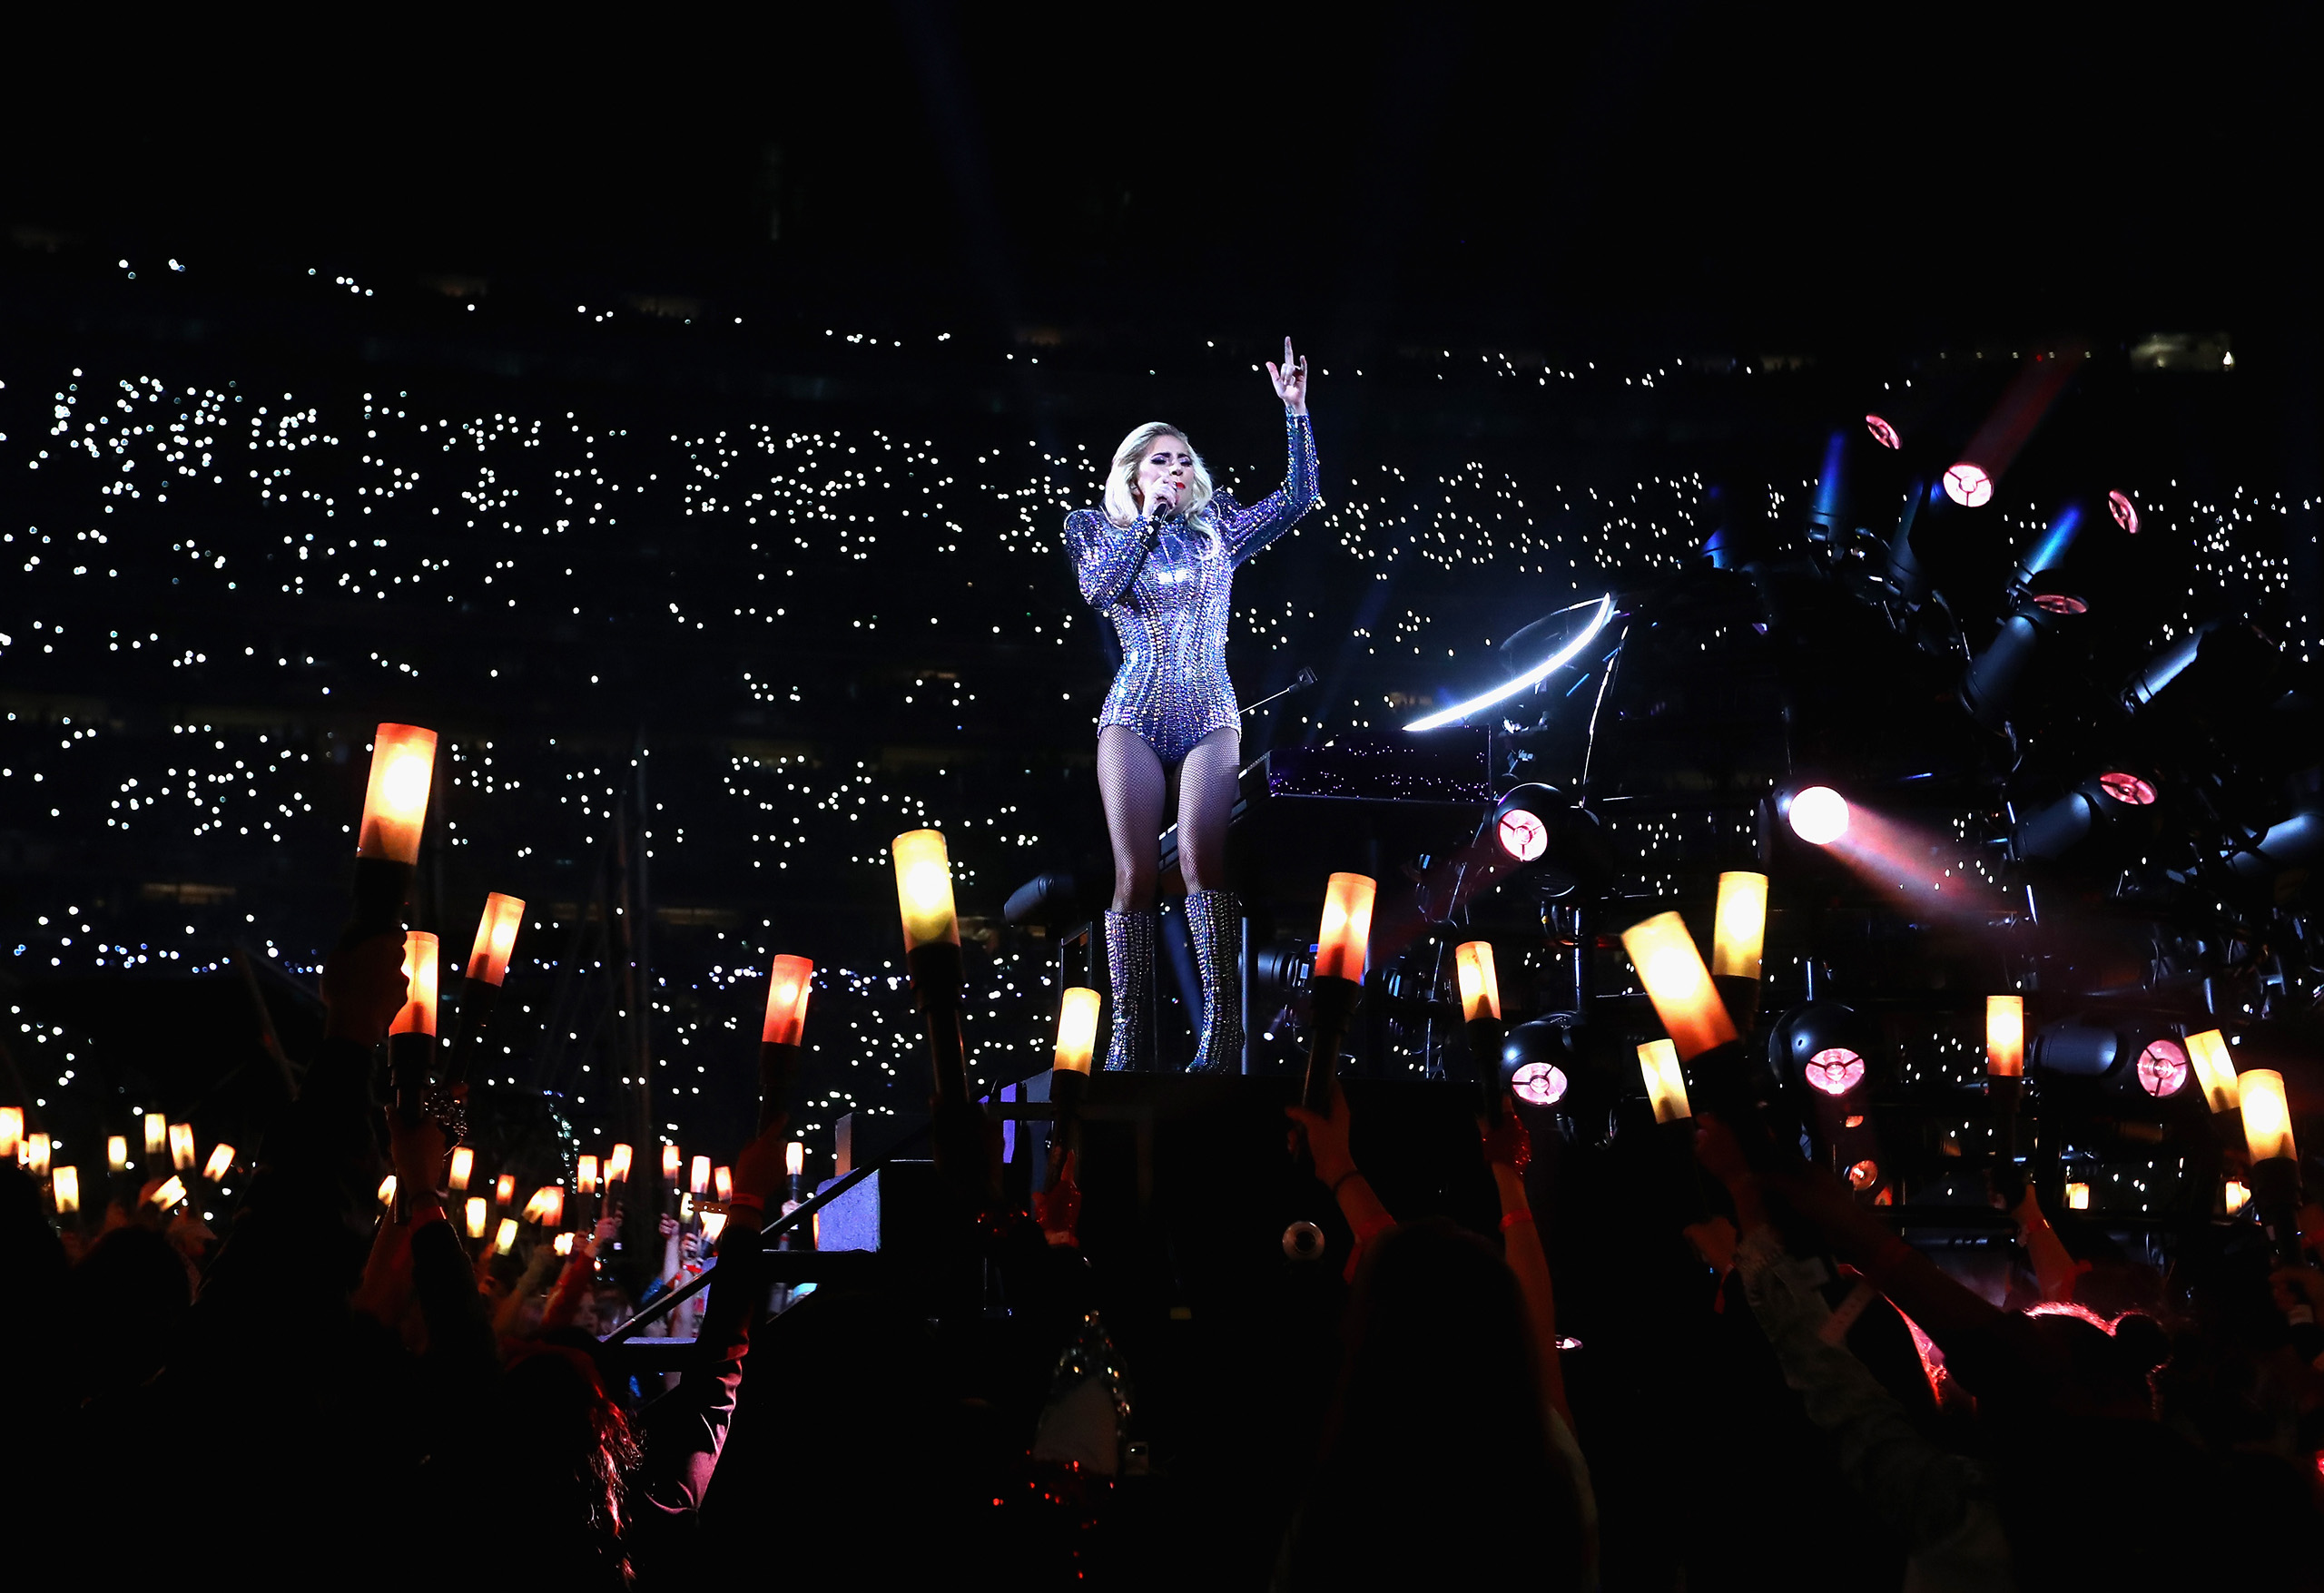 Lady Gaga performs during the Pepsi Zero Sugar Super Bowl 51 Halftime Show at NRG Stadium in Houston on Feb. 5, 2017